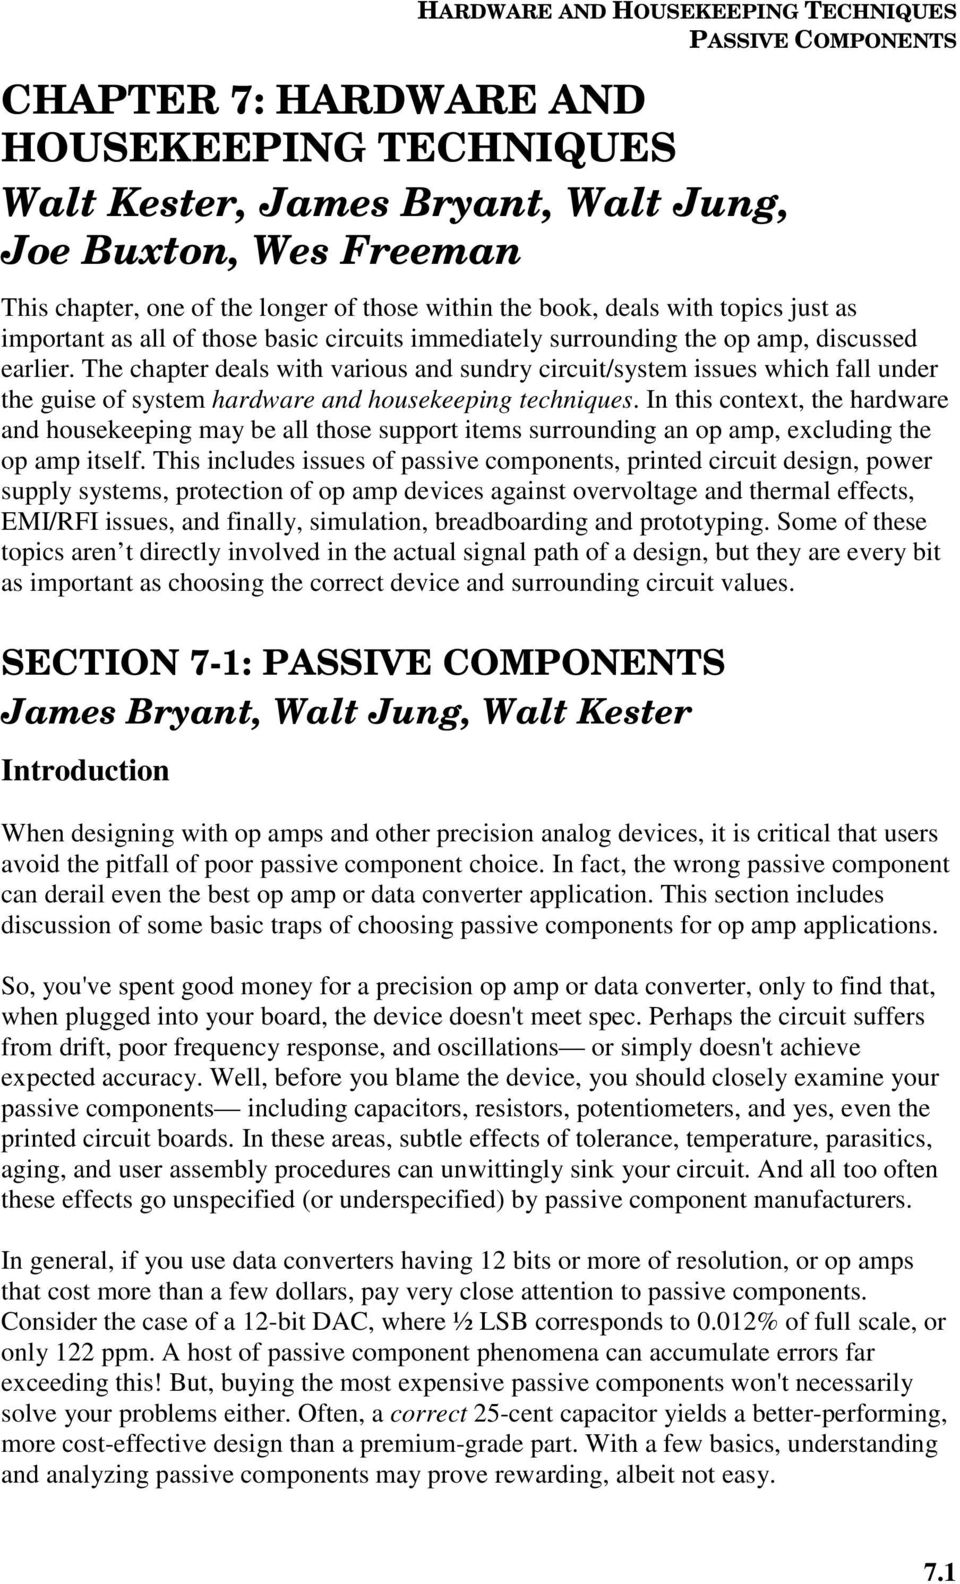 Hardware And Housekeeping Techniques Pdf Family Op Amp Series Amplifier Type General Purpose Number Of Circuits The Chapter Deals With Various Sundry Circuit System Issues Which Fall Under Guise 4 Applications